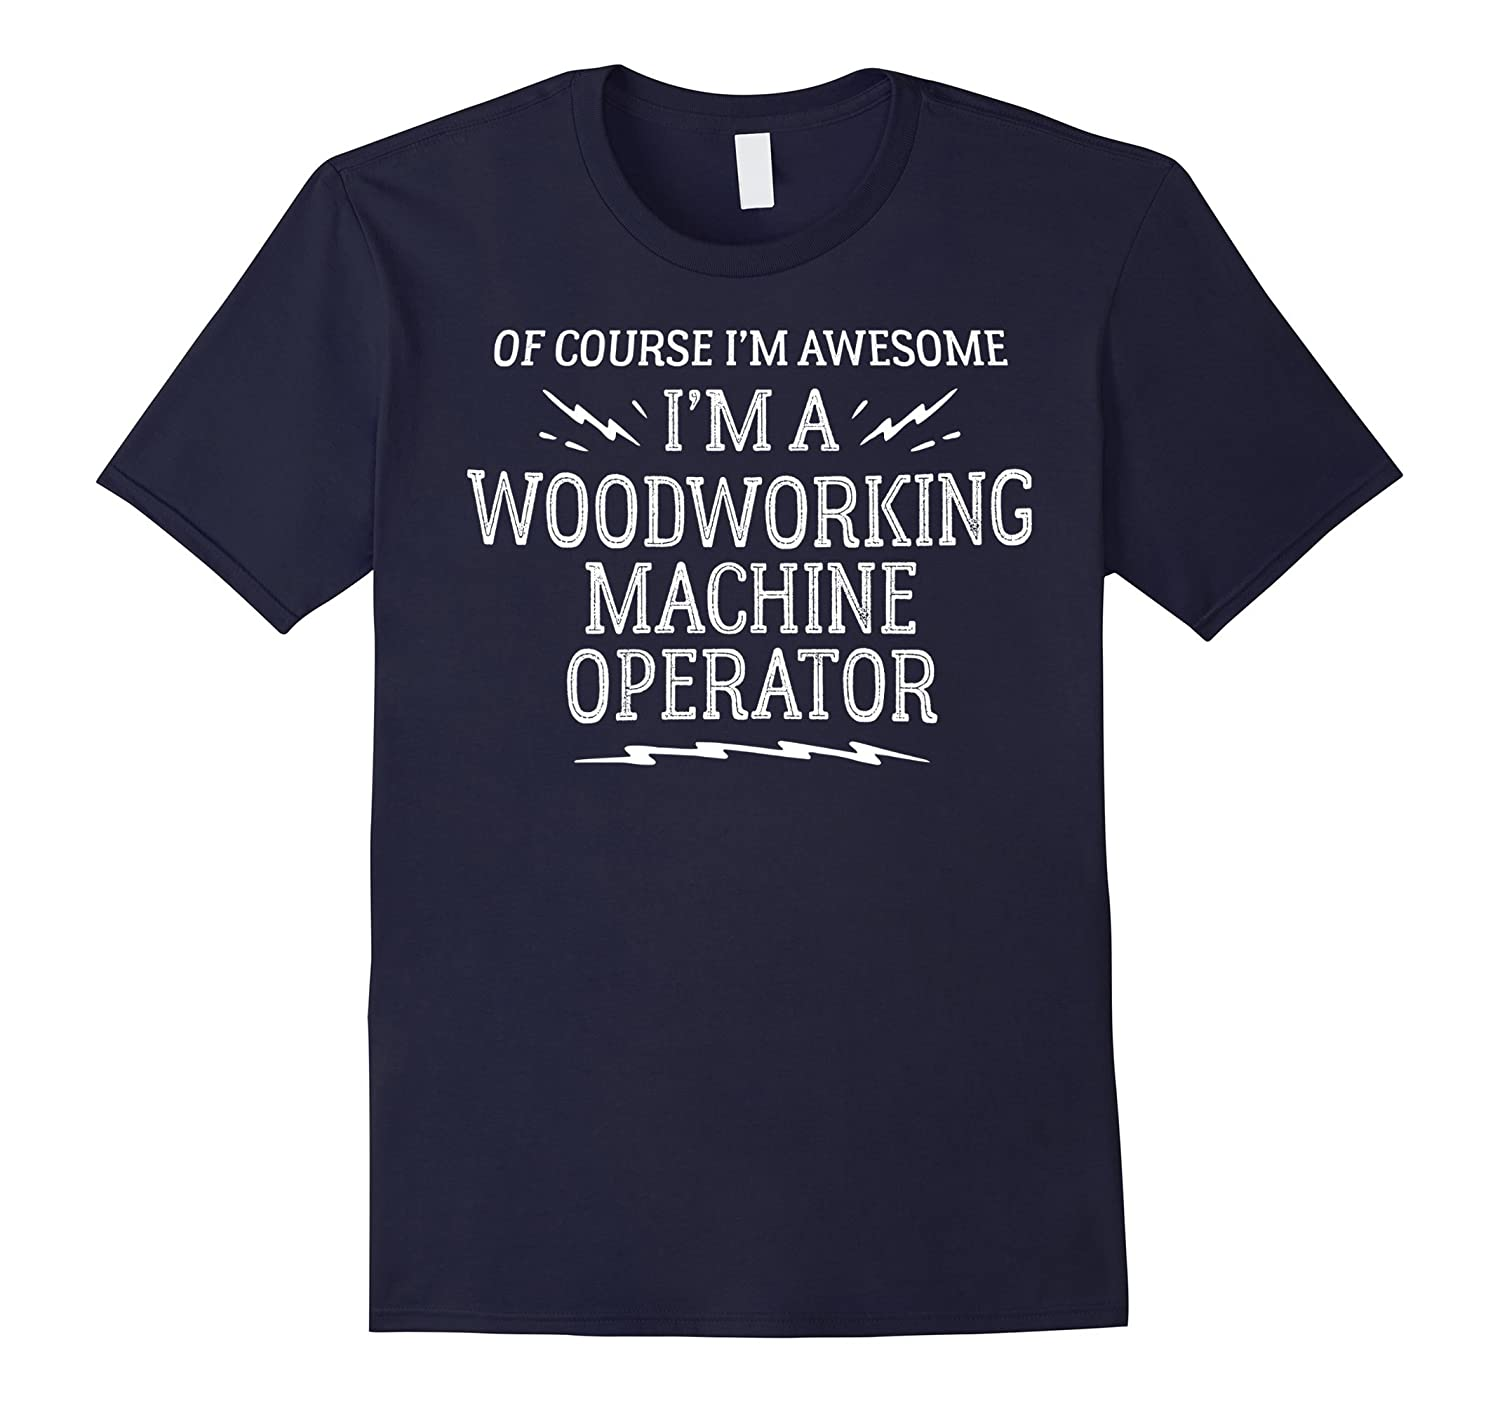 Woodworking Machine Operator Work T-Shirt - Of Course Im Aw-TJ